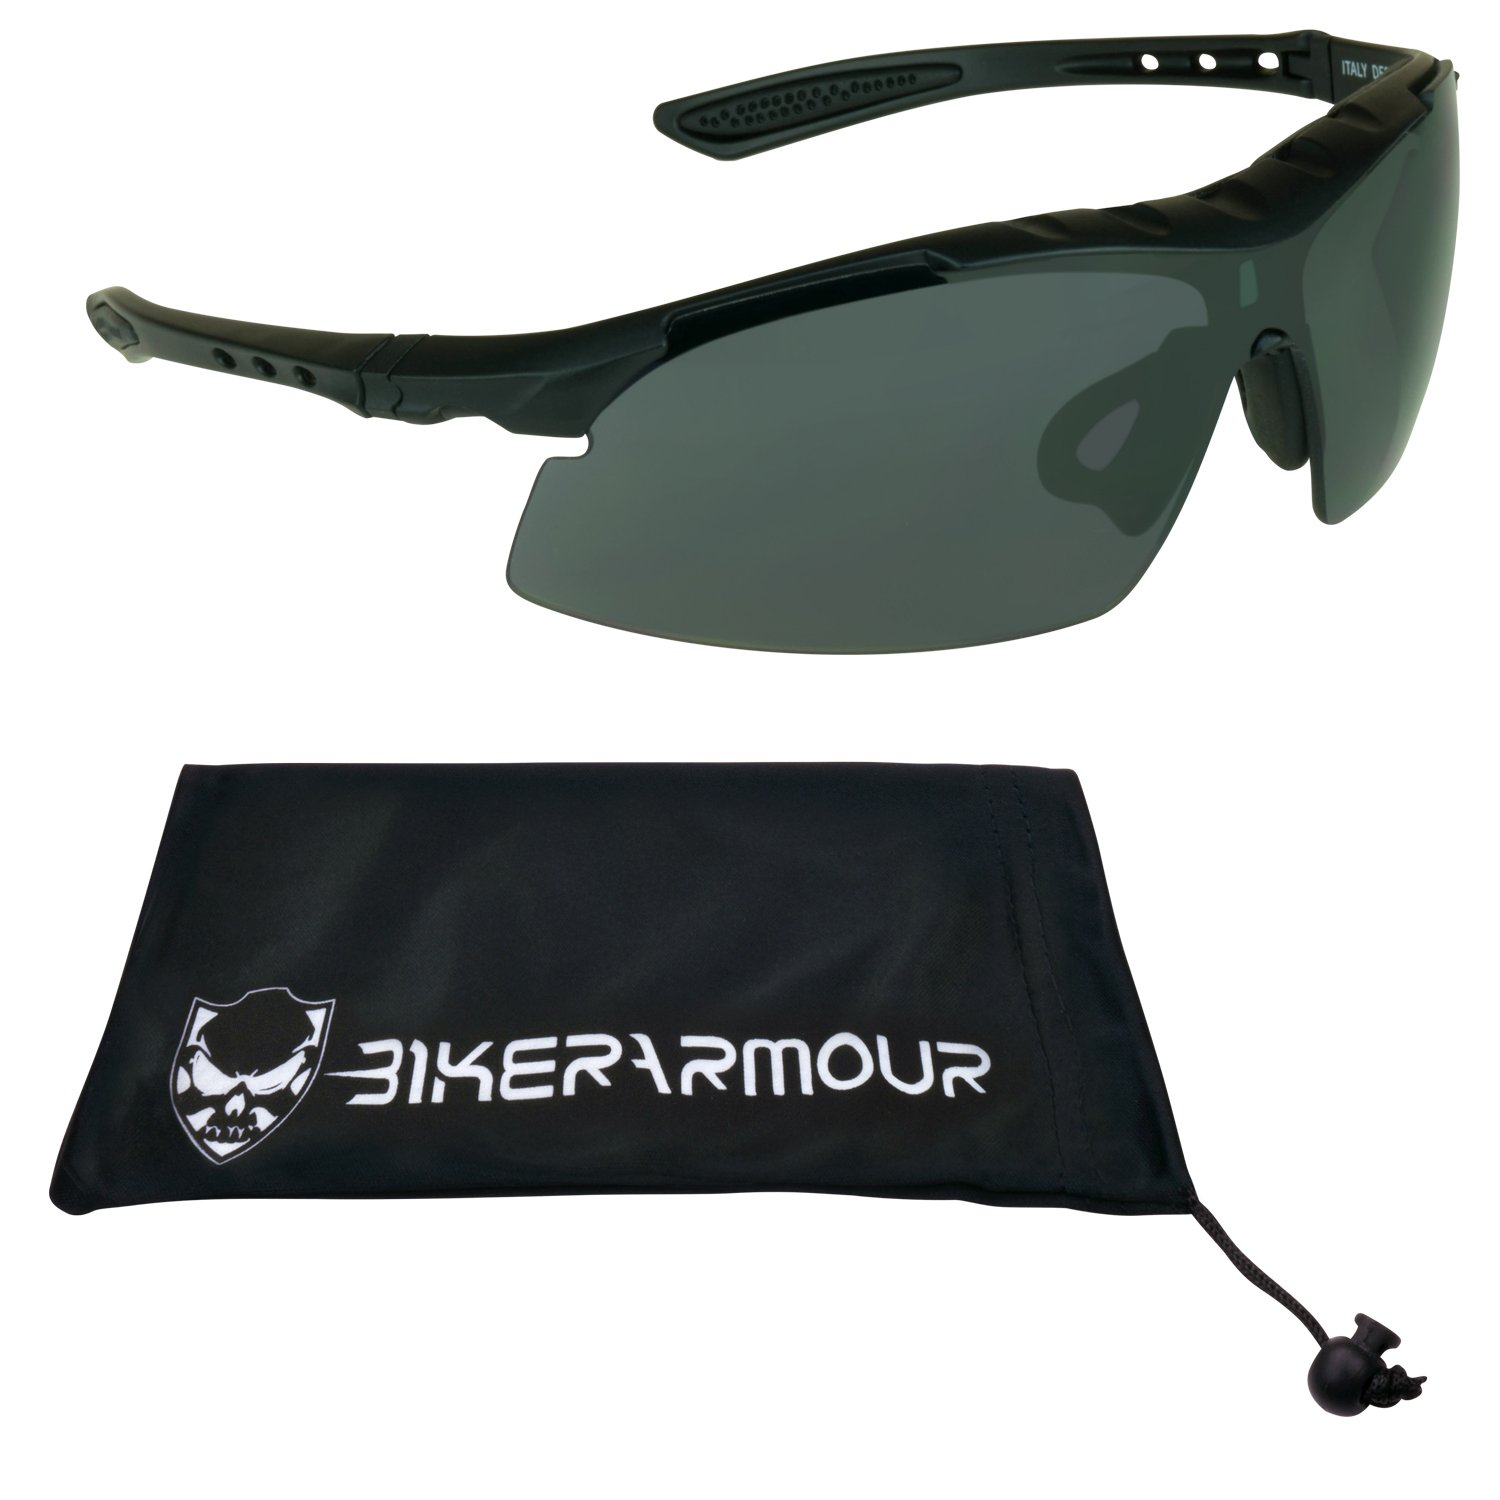 Z87.1 Satety Sunglasses for Cycling, Hunting, Shooting, Running, Motorcycle Riding, Tennis, Driving and All Sports Activities. Built in sweat proof foam cushion on top of frame. Medium to most Extra Large Head Sizes. Free Microfiber Cleaning Case Included